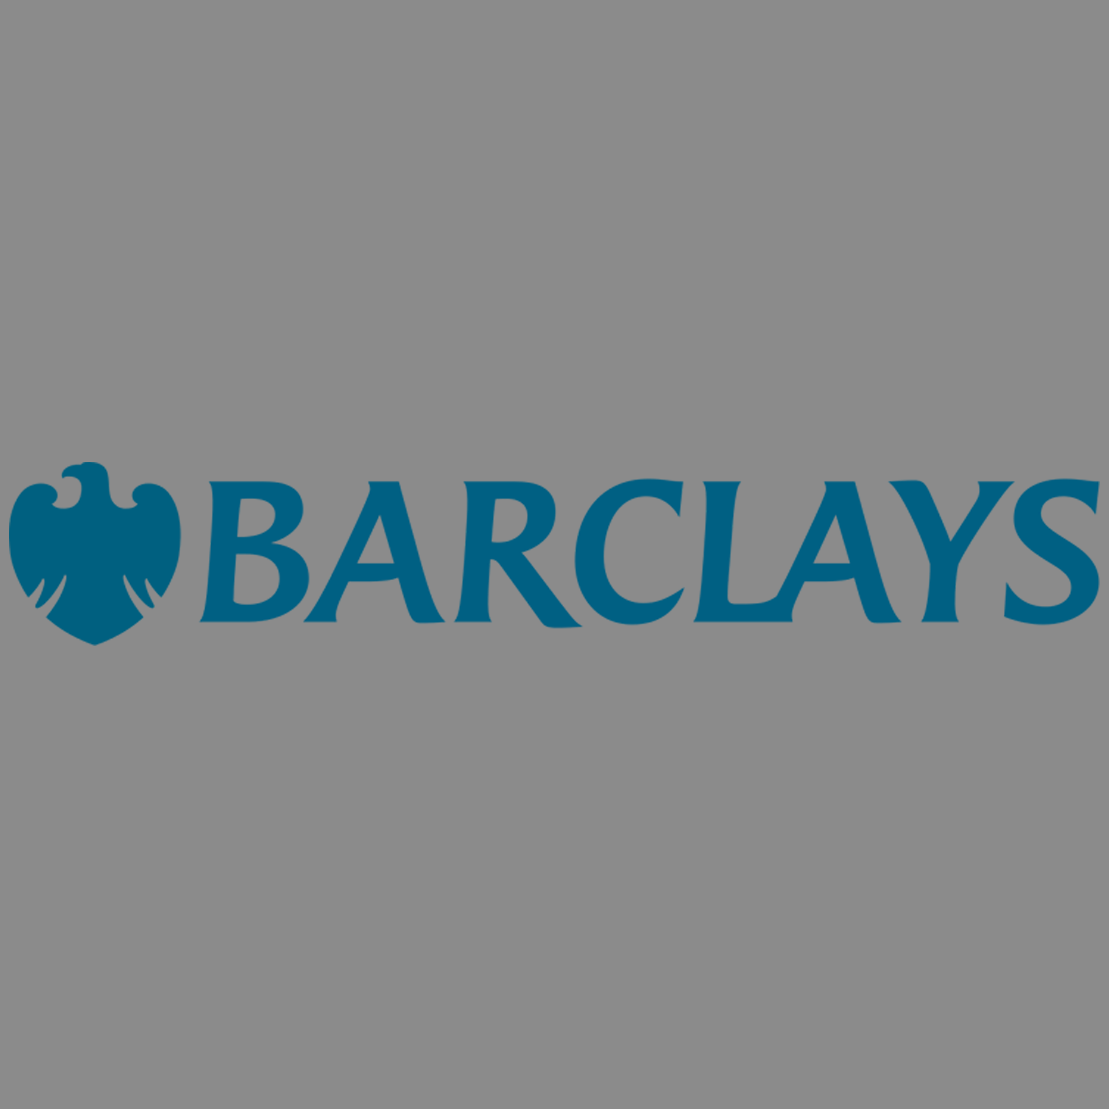 barclays-hover